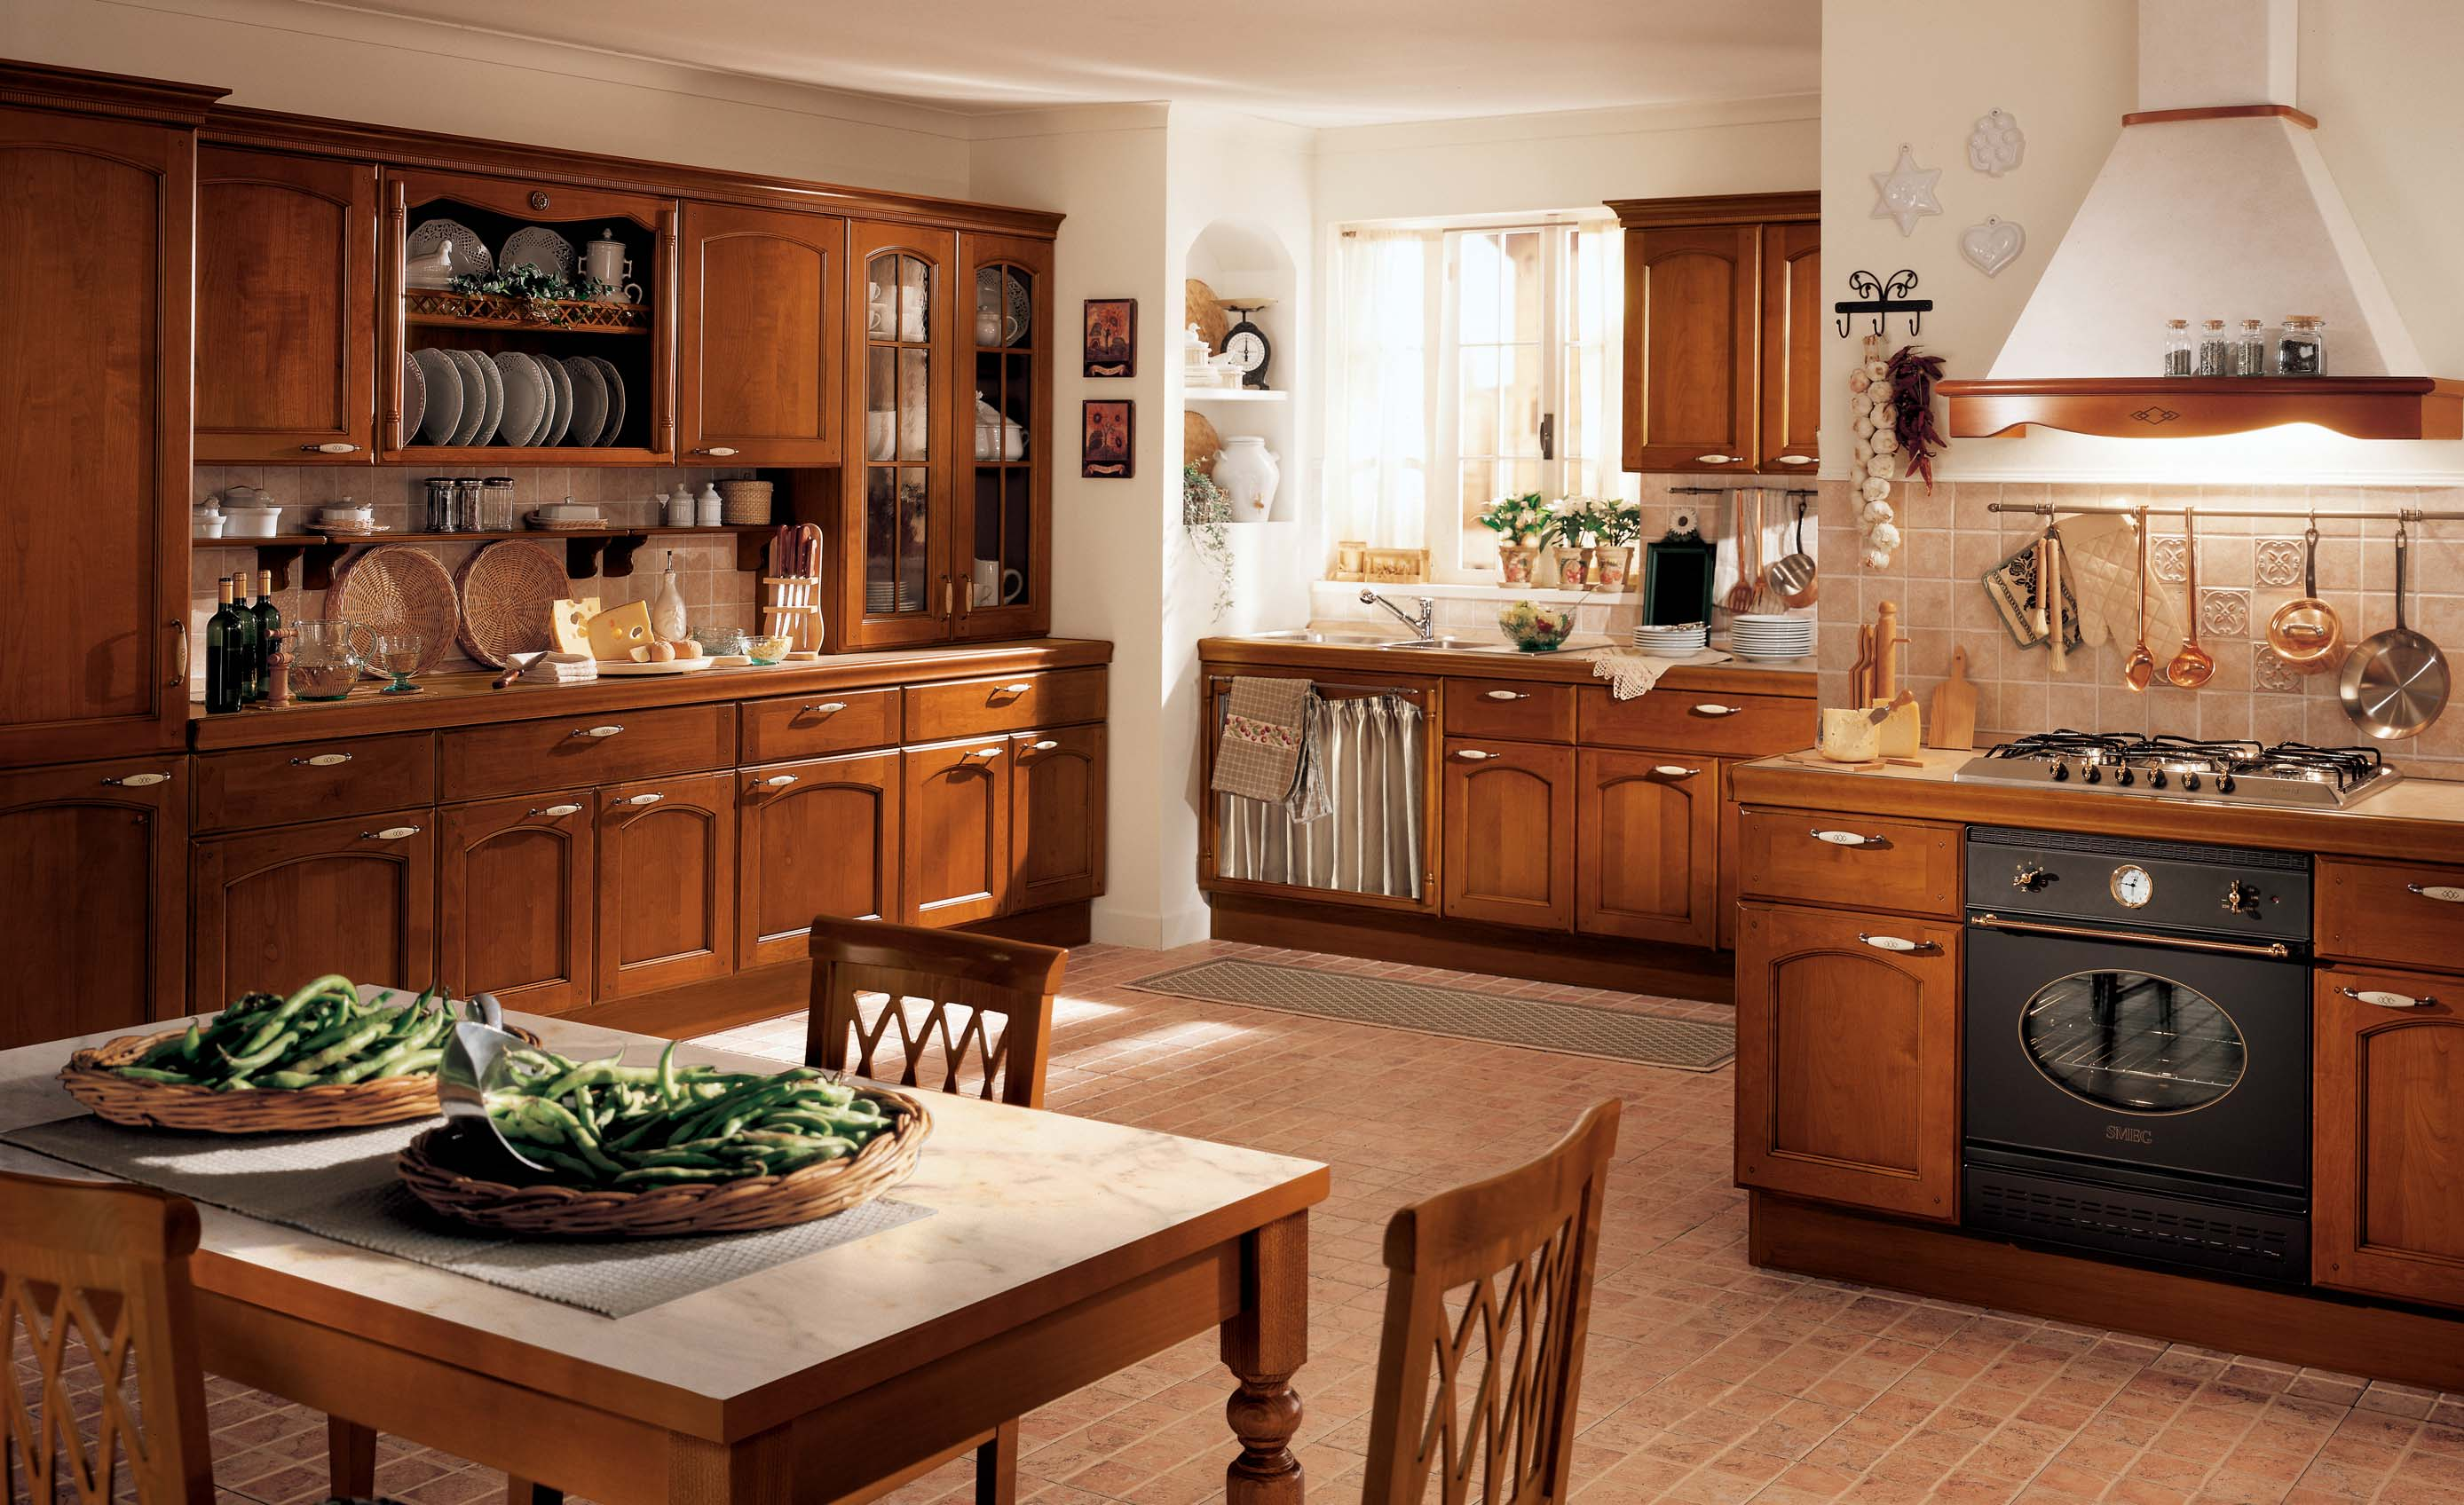 Home depot kitchen design gallery homesfeed for Home depot kitchen designs